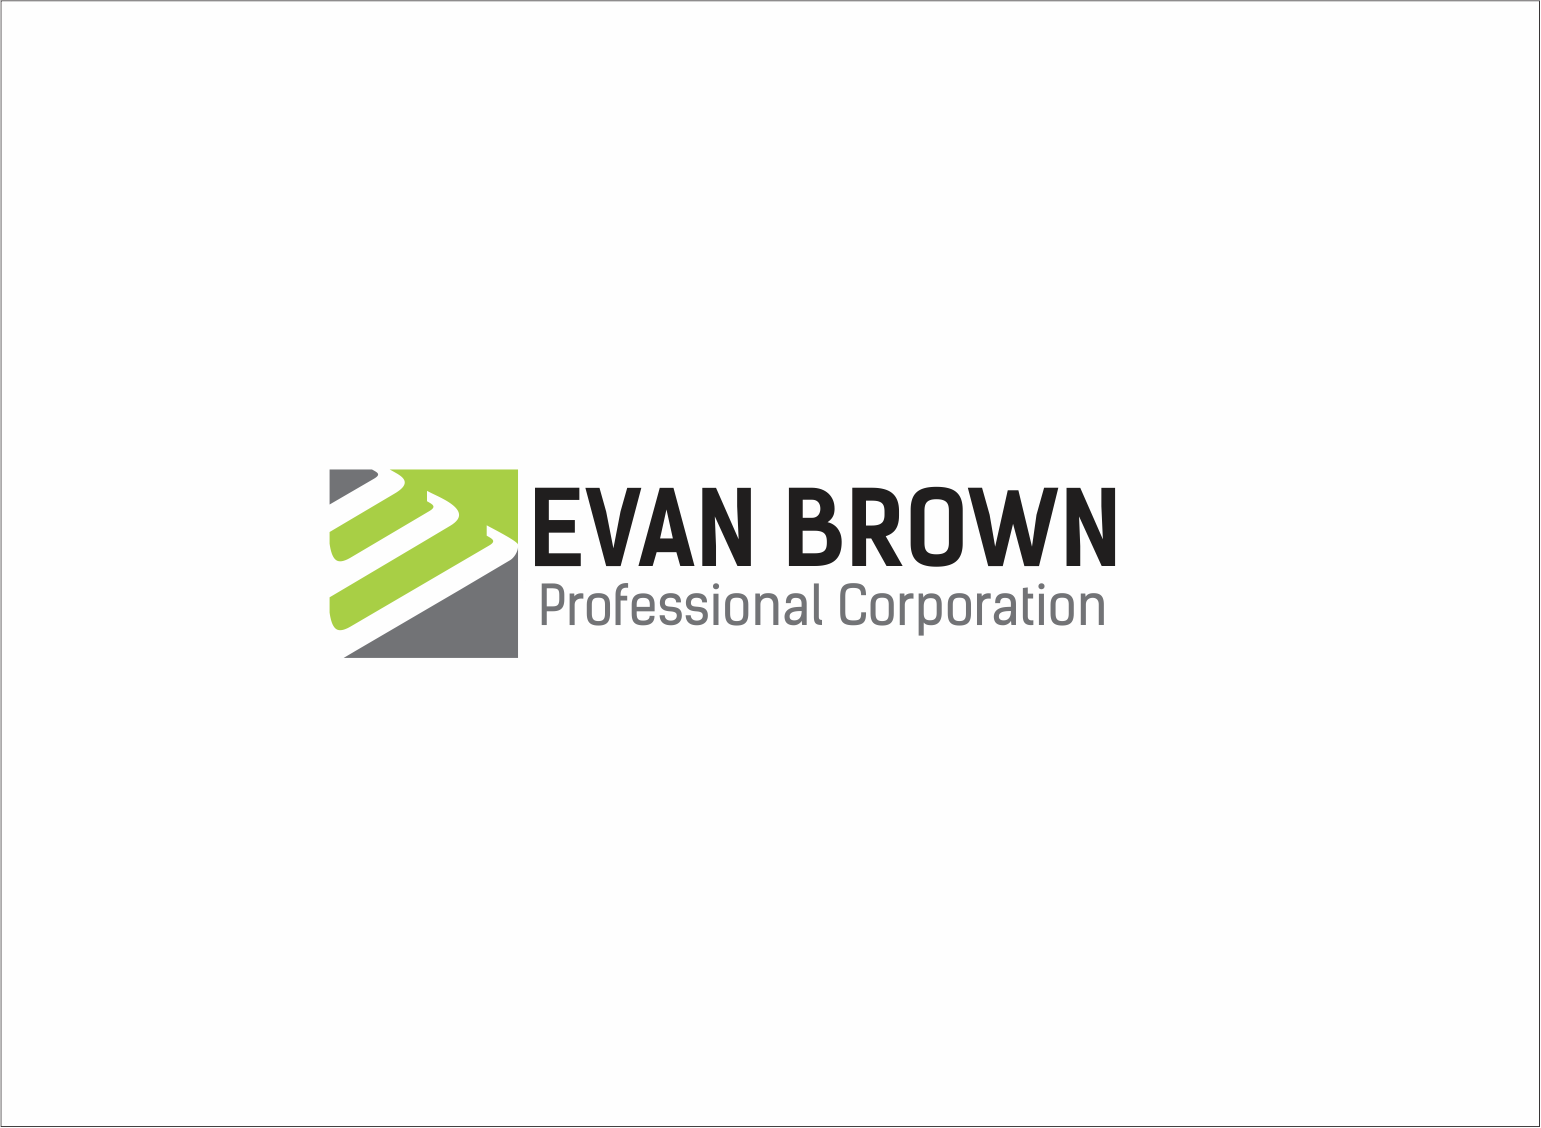 Logo Design by Armada Jamaluddin - Entry No. 31 in the Logo Design Contest Inspiring Logo Design for Evan Brown Professional Corporation.